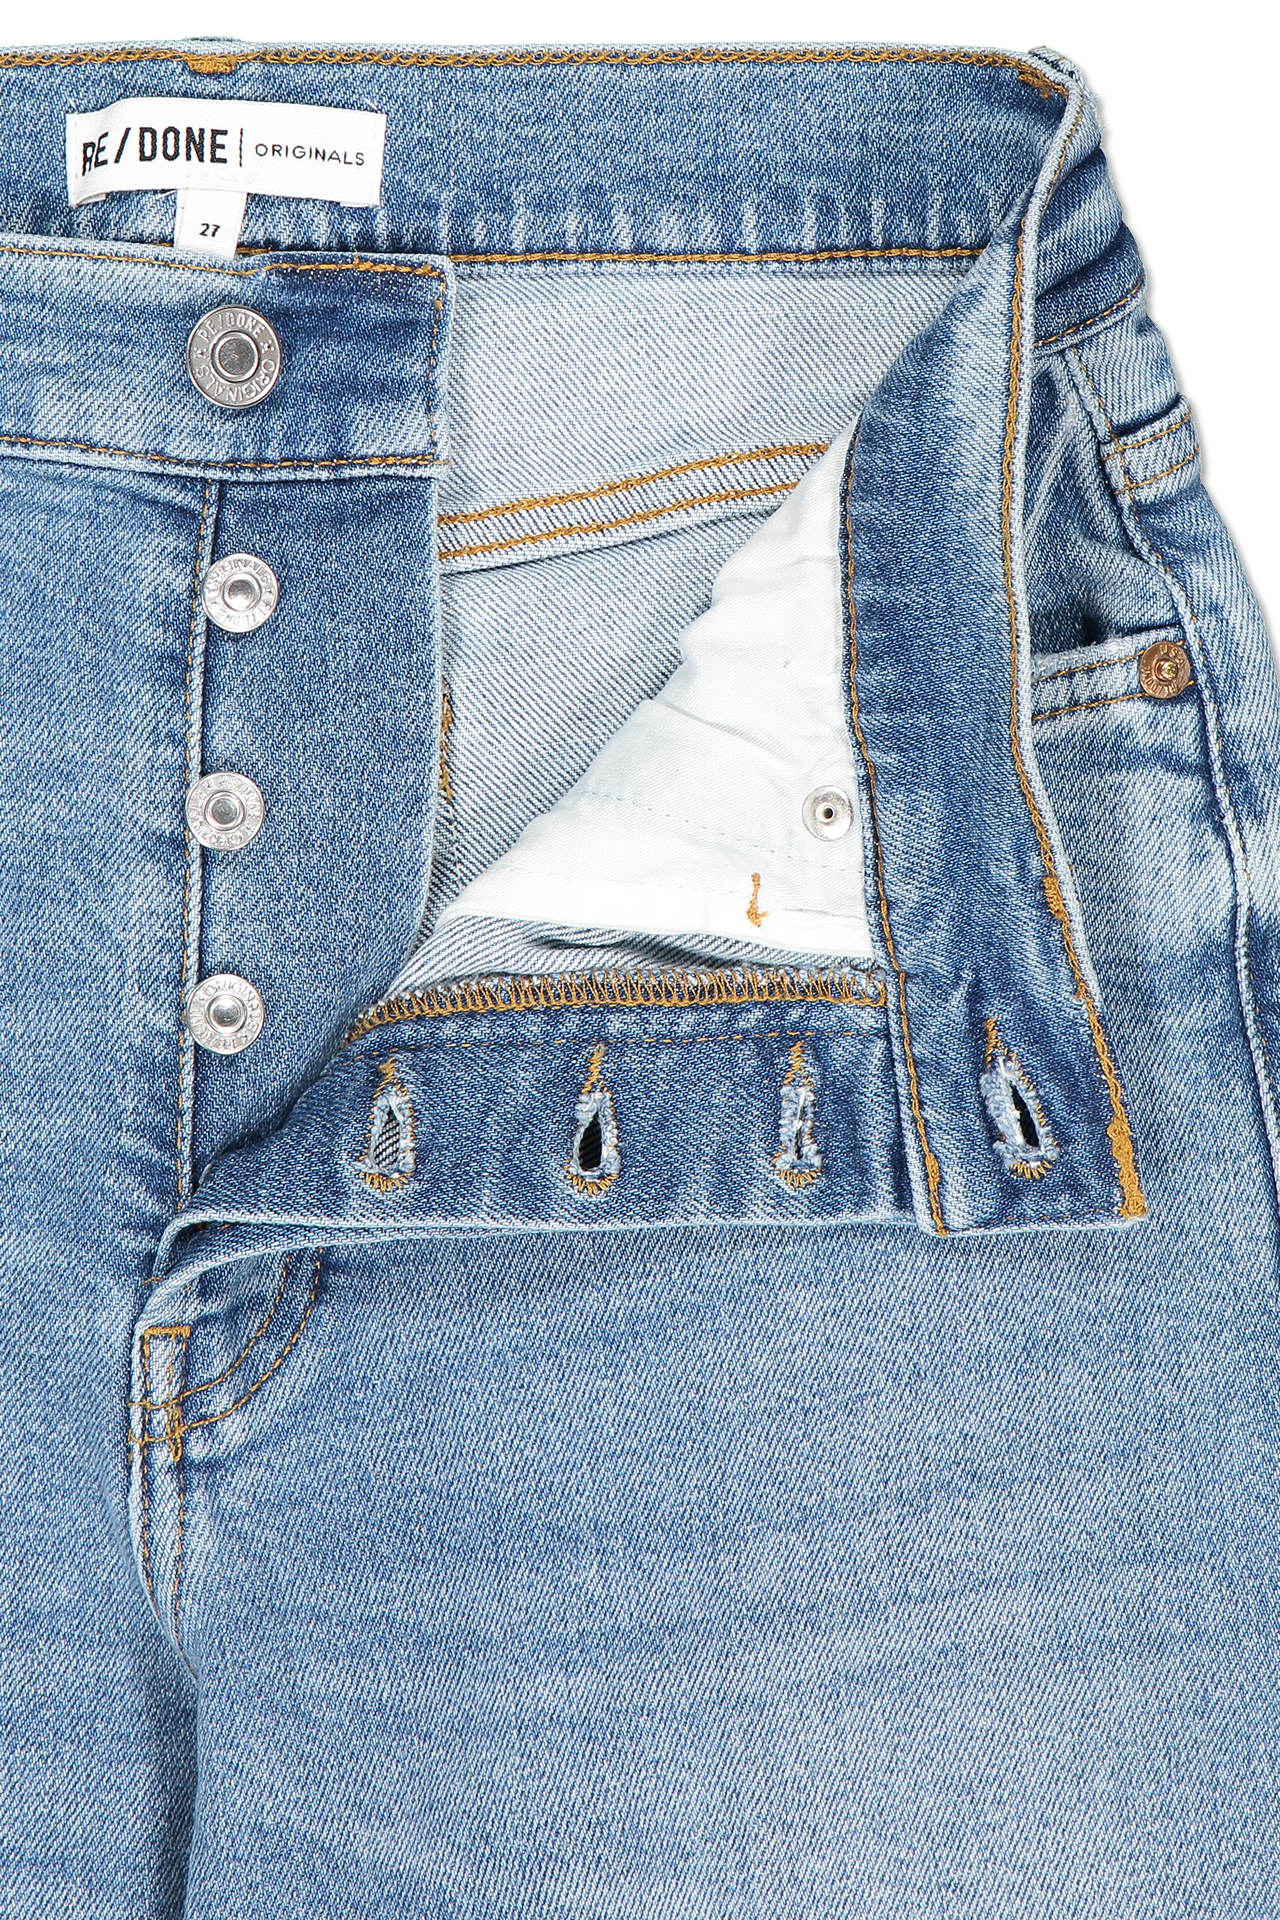 Waistline and zipper detail image of RE/DONE High Rise Stove Pipe Denim